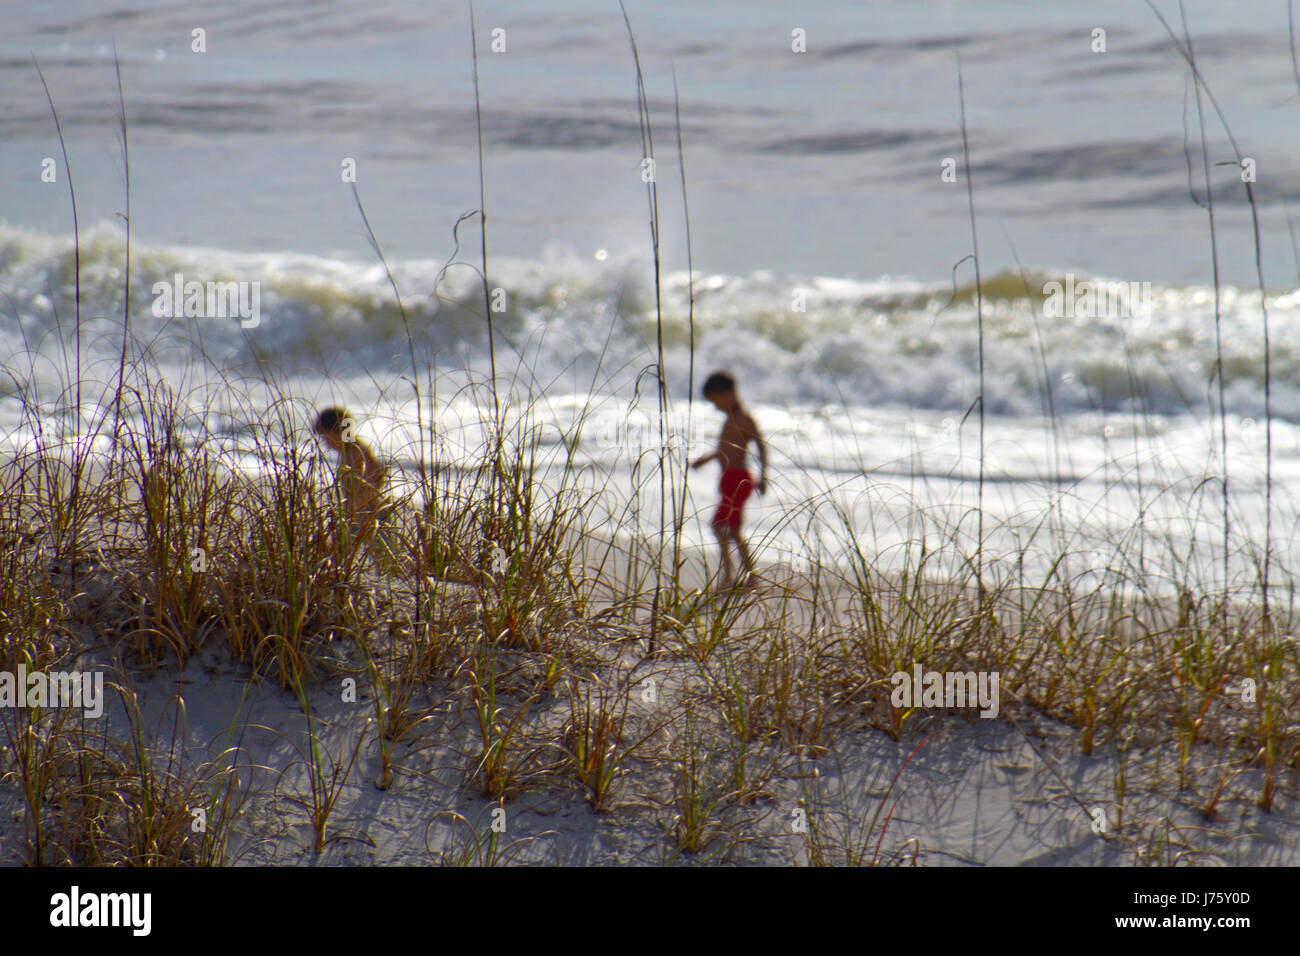 Silhouettes of two young boys in swimsuits exploring the beach with large waves behind them and beach dune grass - Stock Image